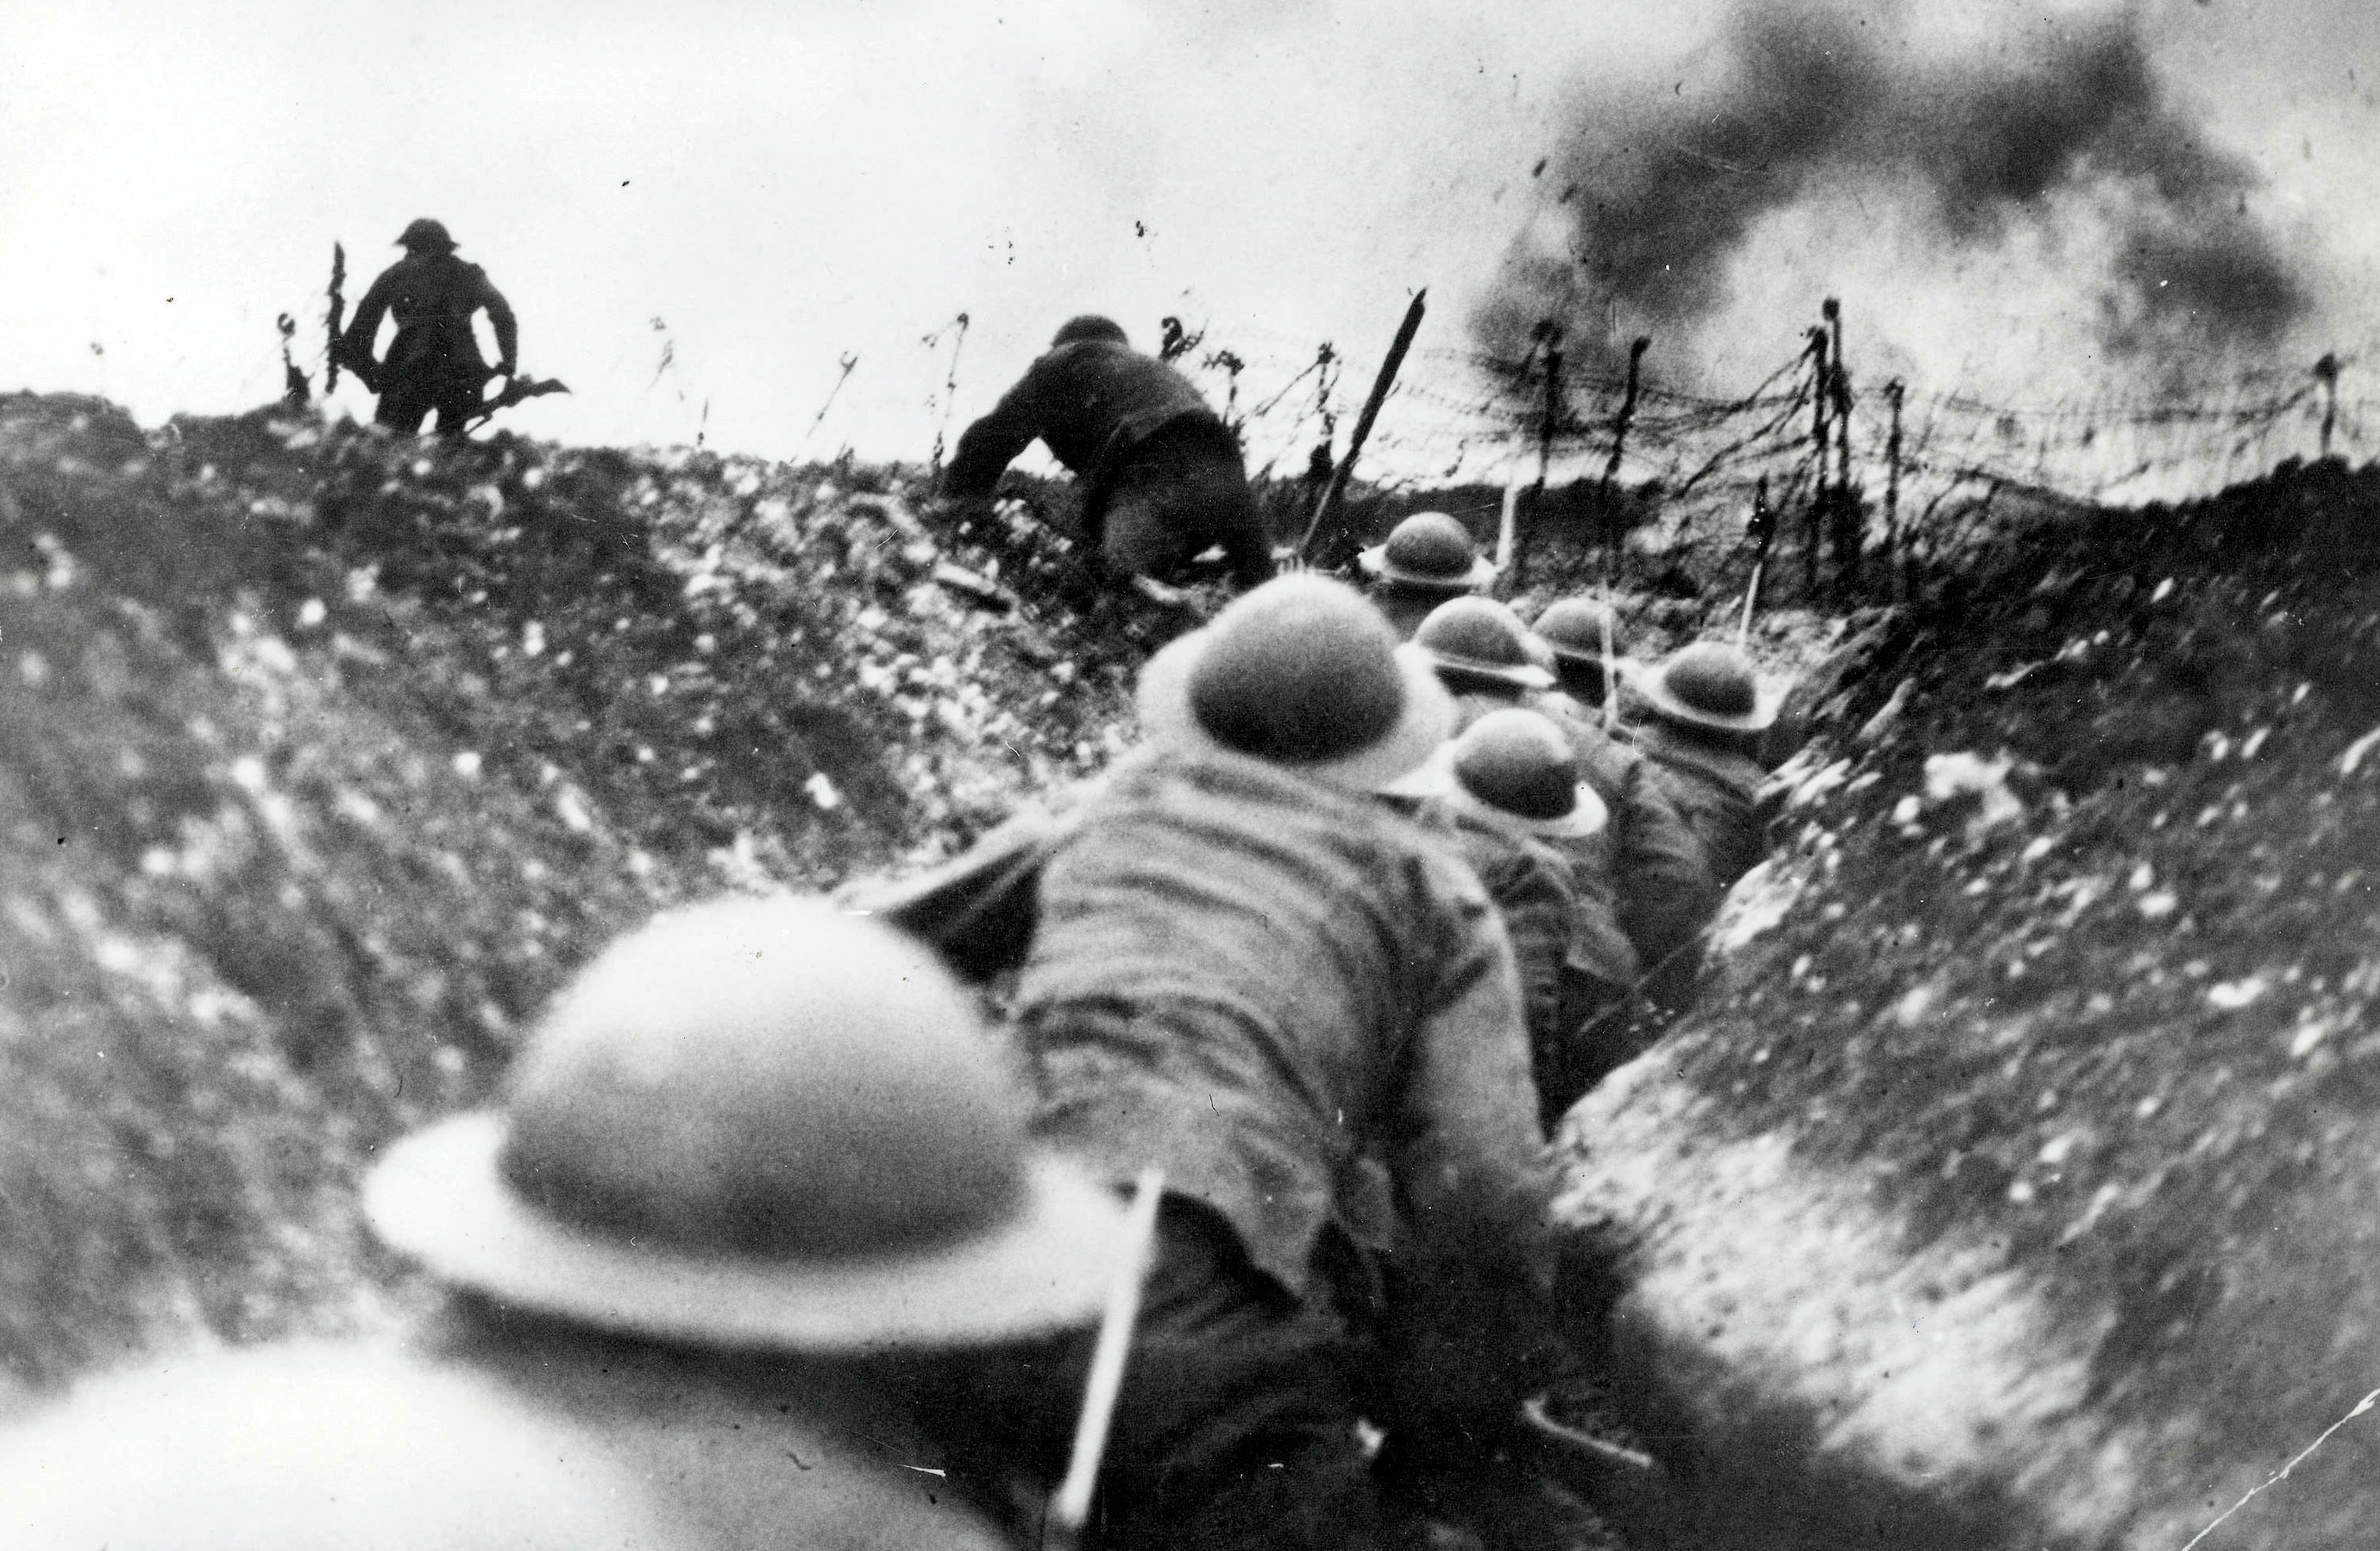 British troops go over the top of the trenches during the Battle of the Somme, 1916. The Somme was one of the bloodiest clashes of the First World War, causing more than one million casualties over five months. (Photo by Paul Popper/Popperfoto/Getty Images)